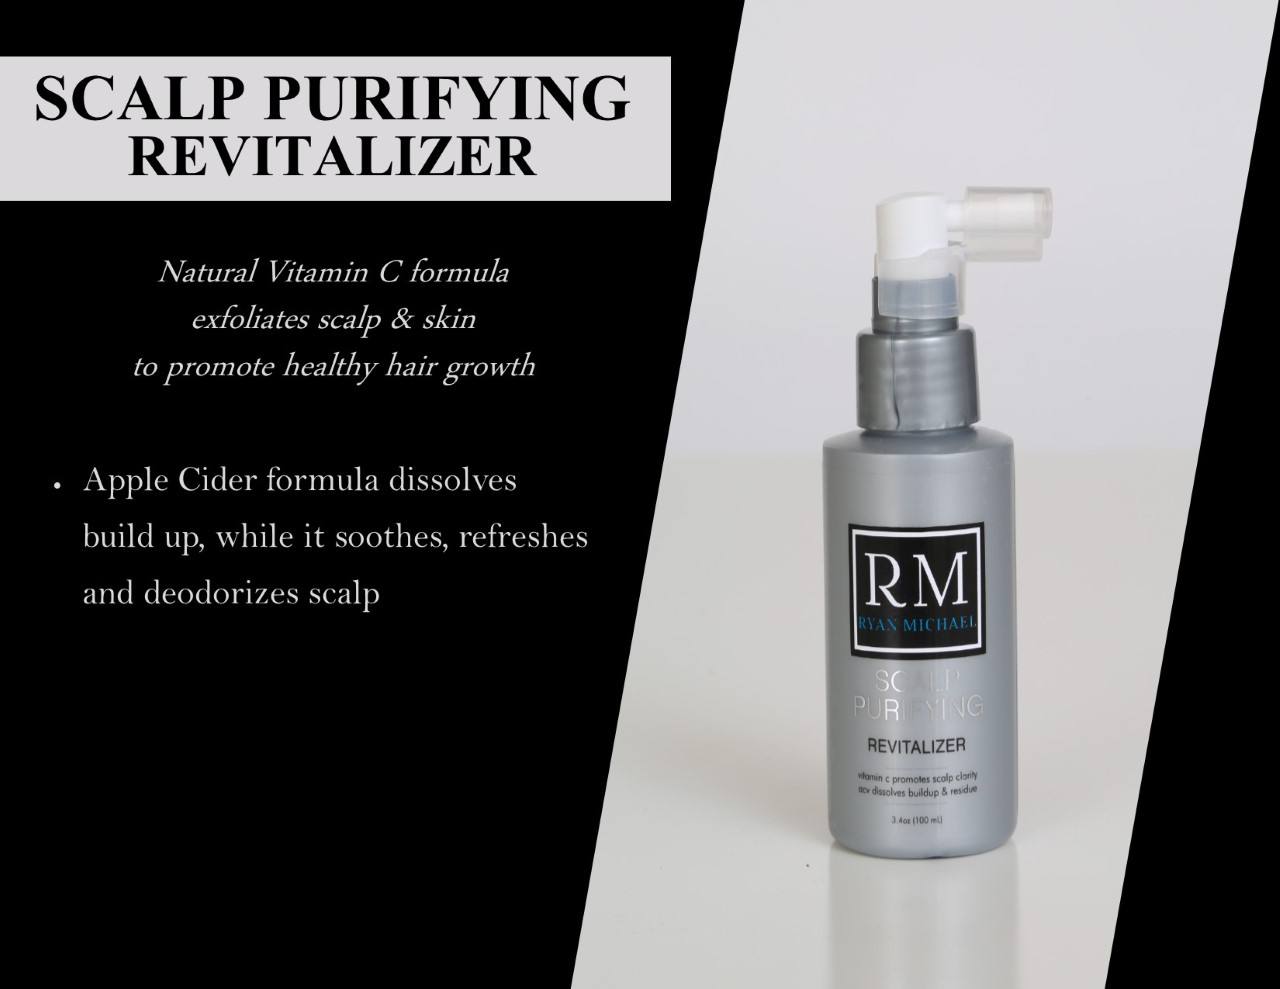 Scalp Purifying Revitalizer